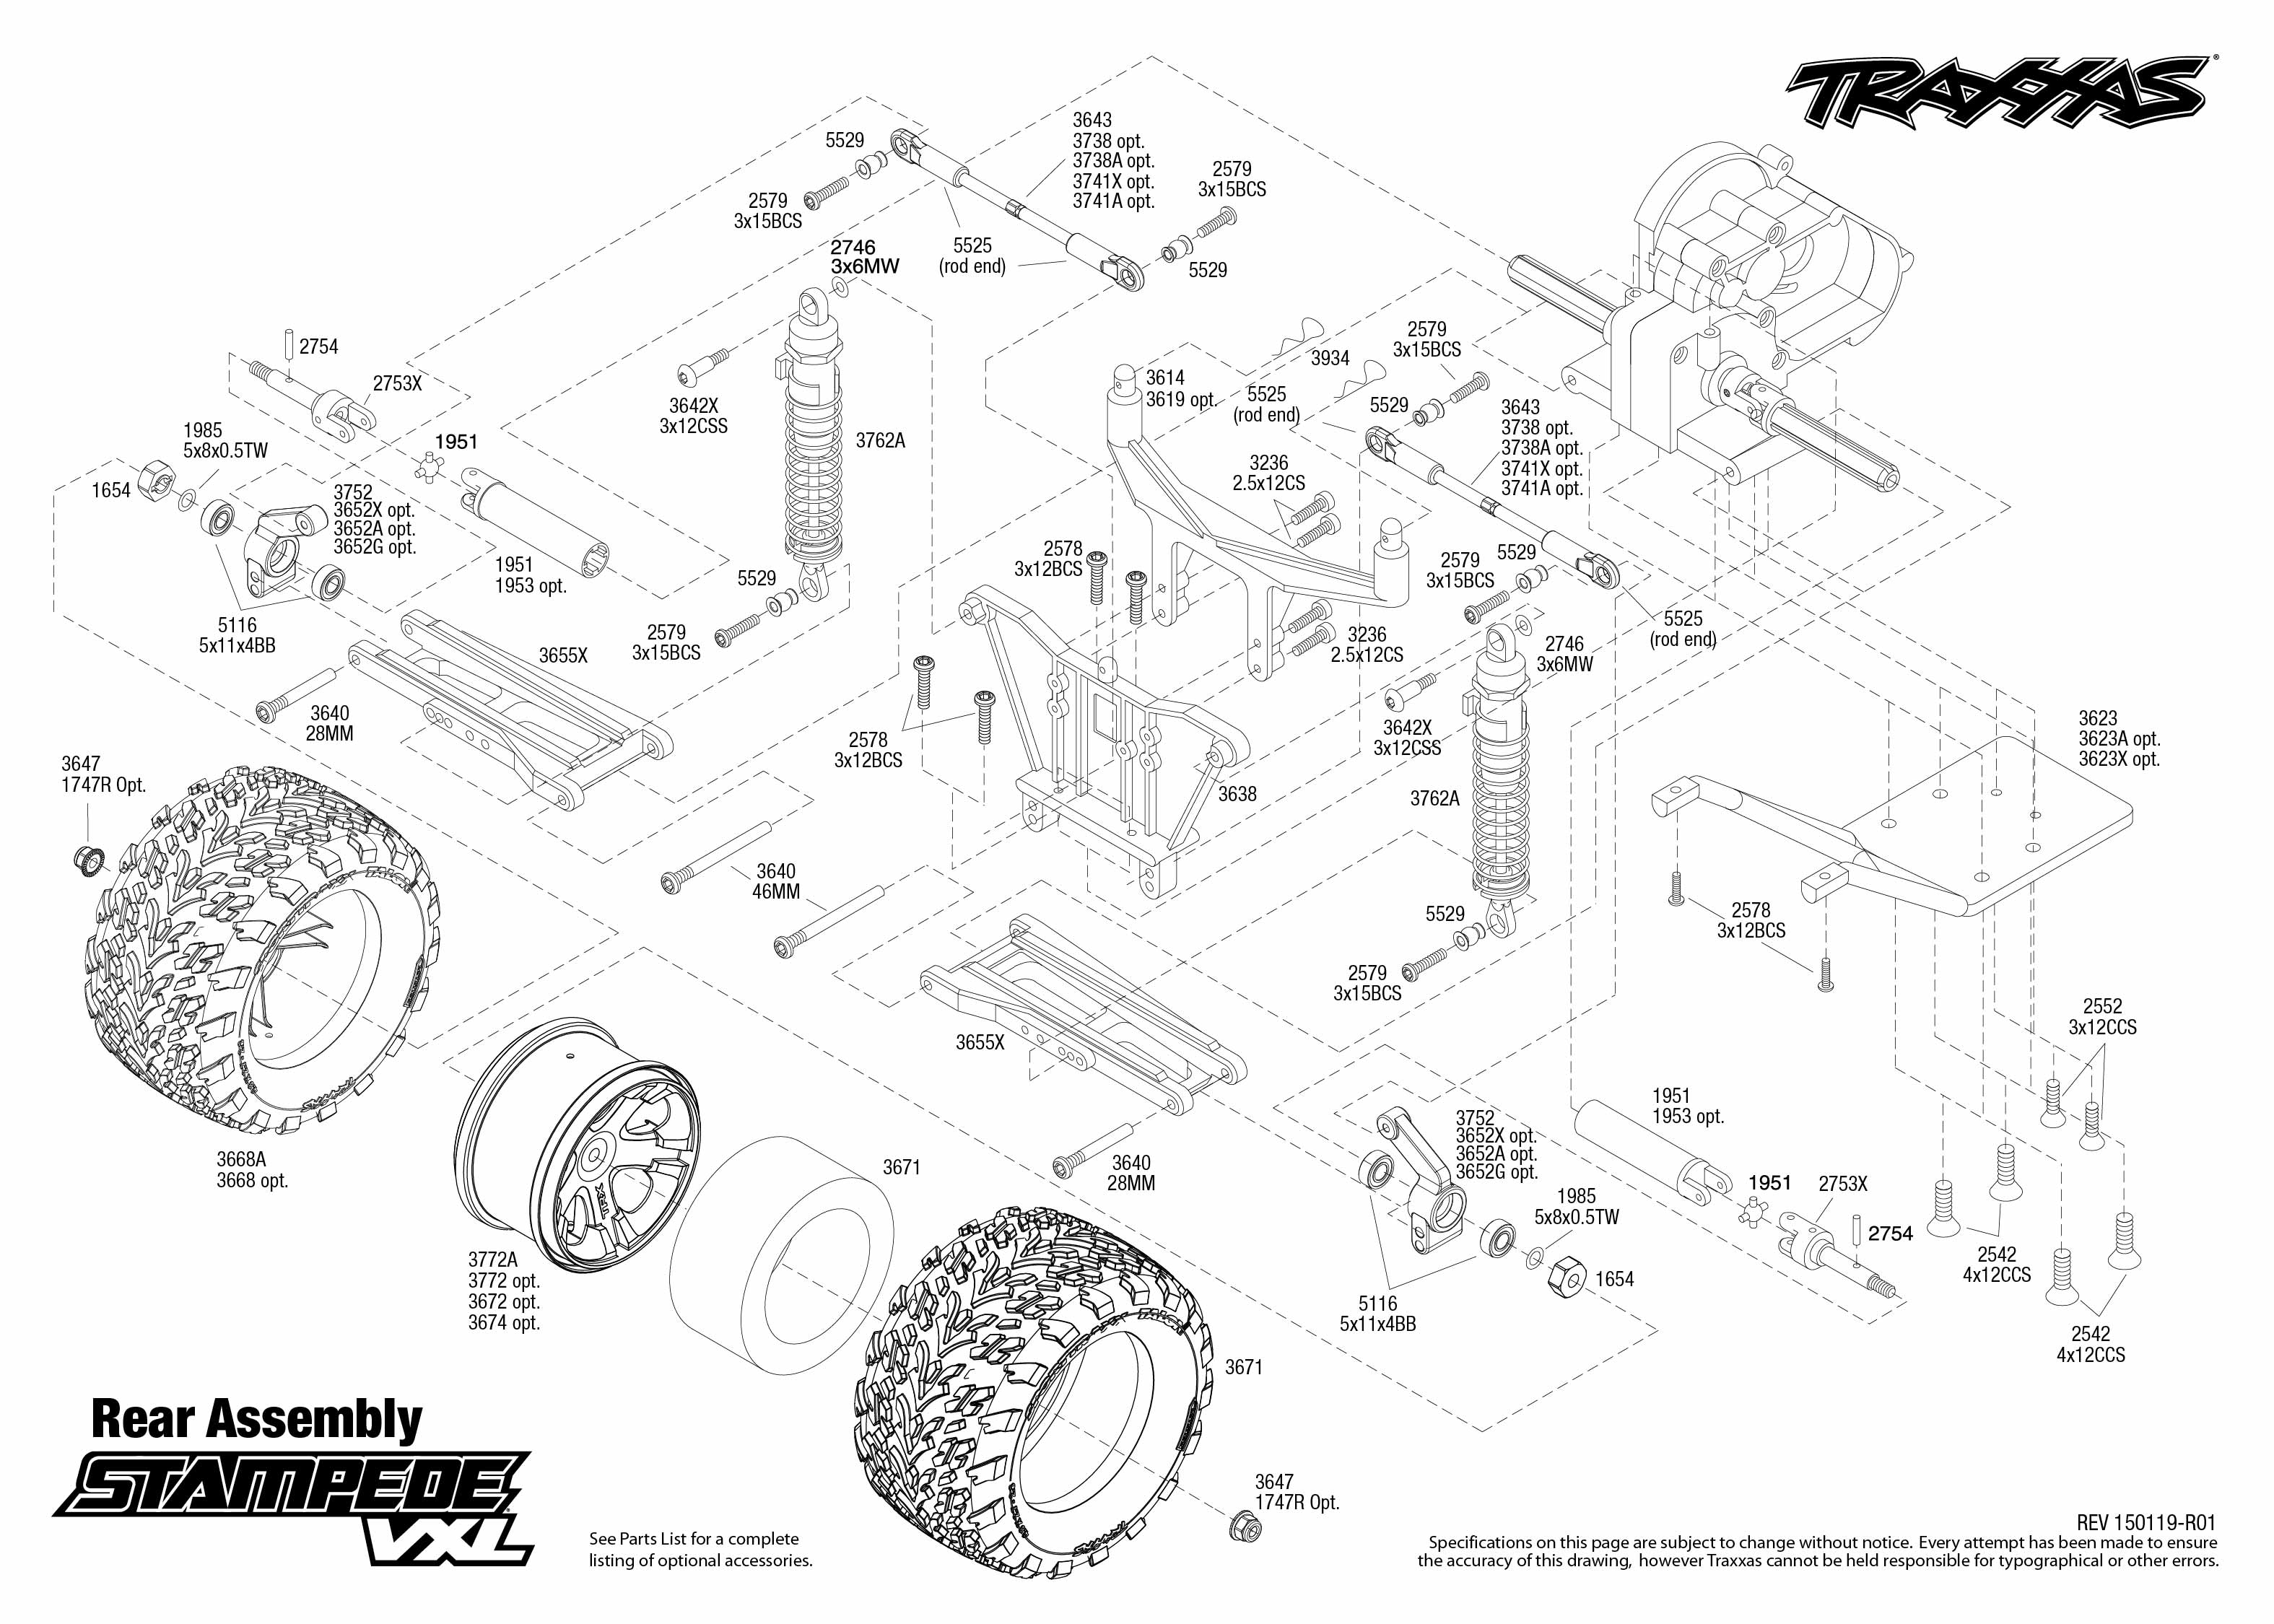 Stampede Vxl 1 Rear Assembly Exploded View